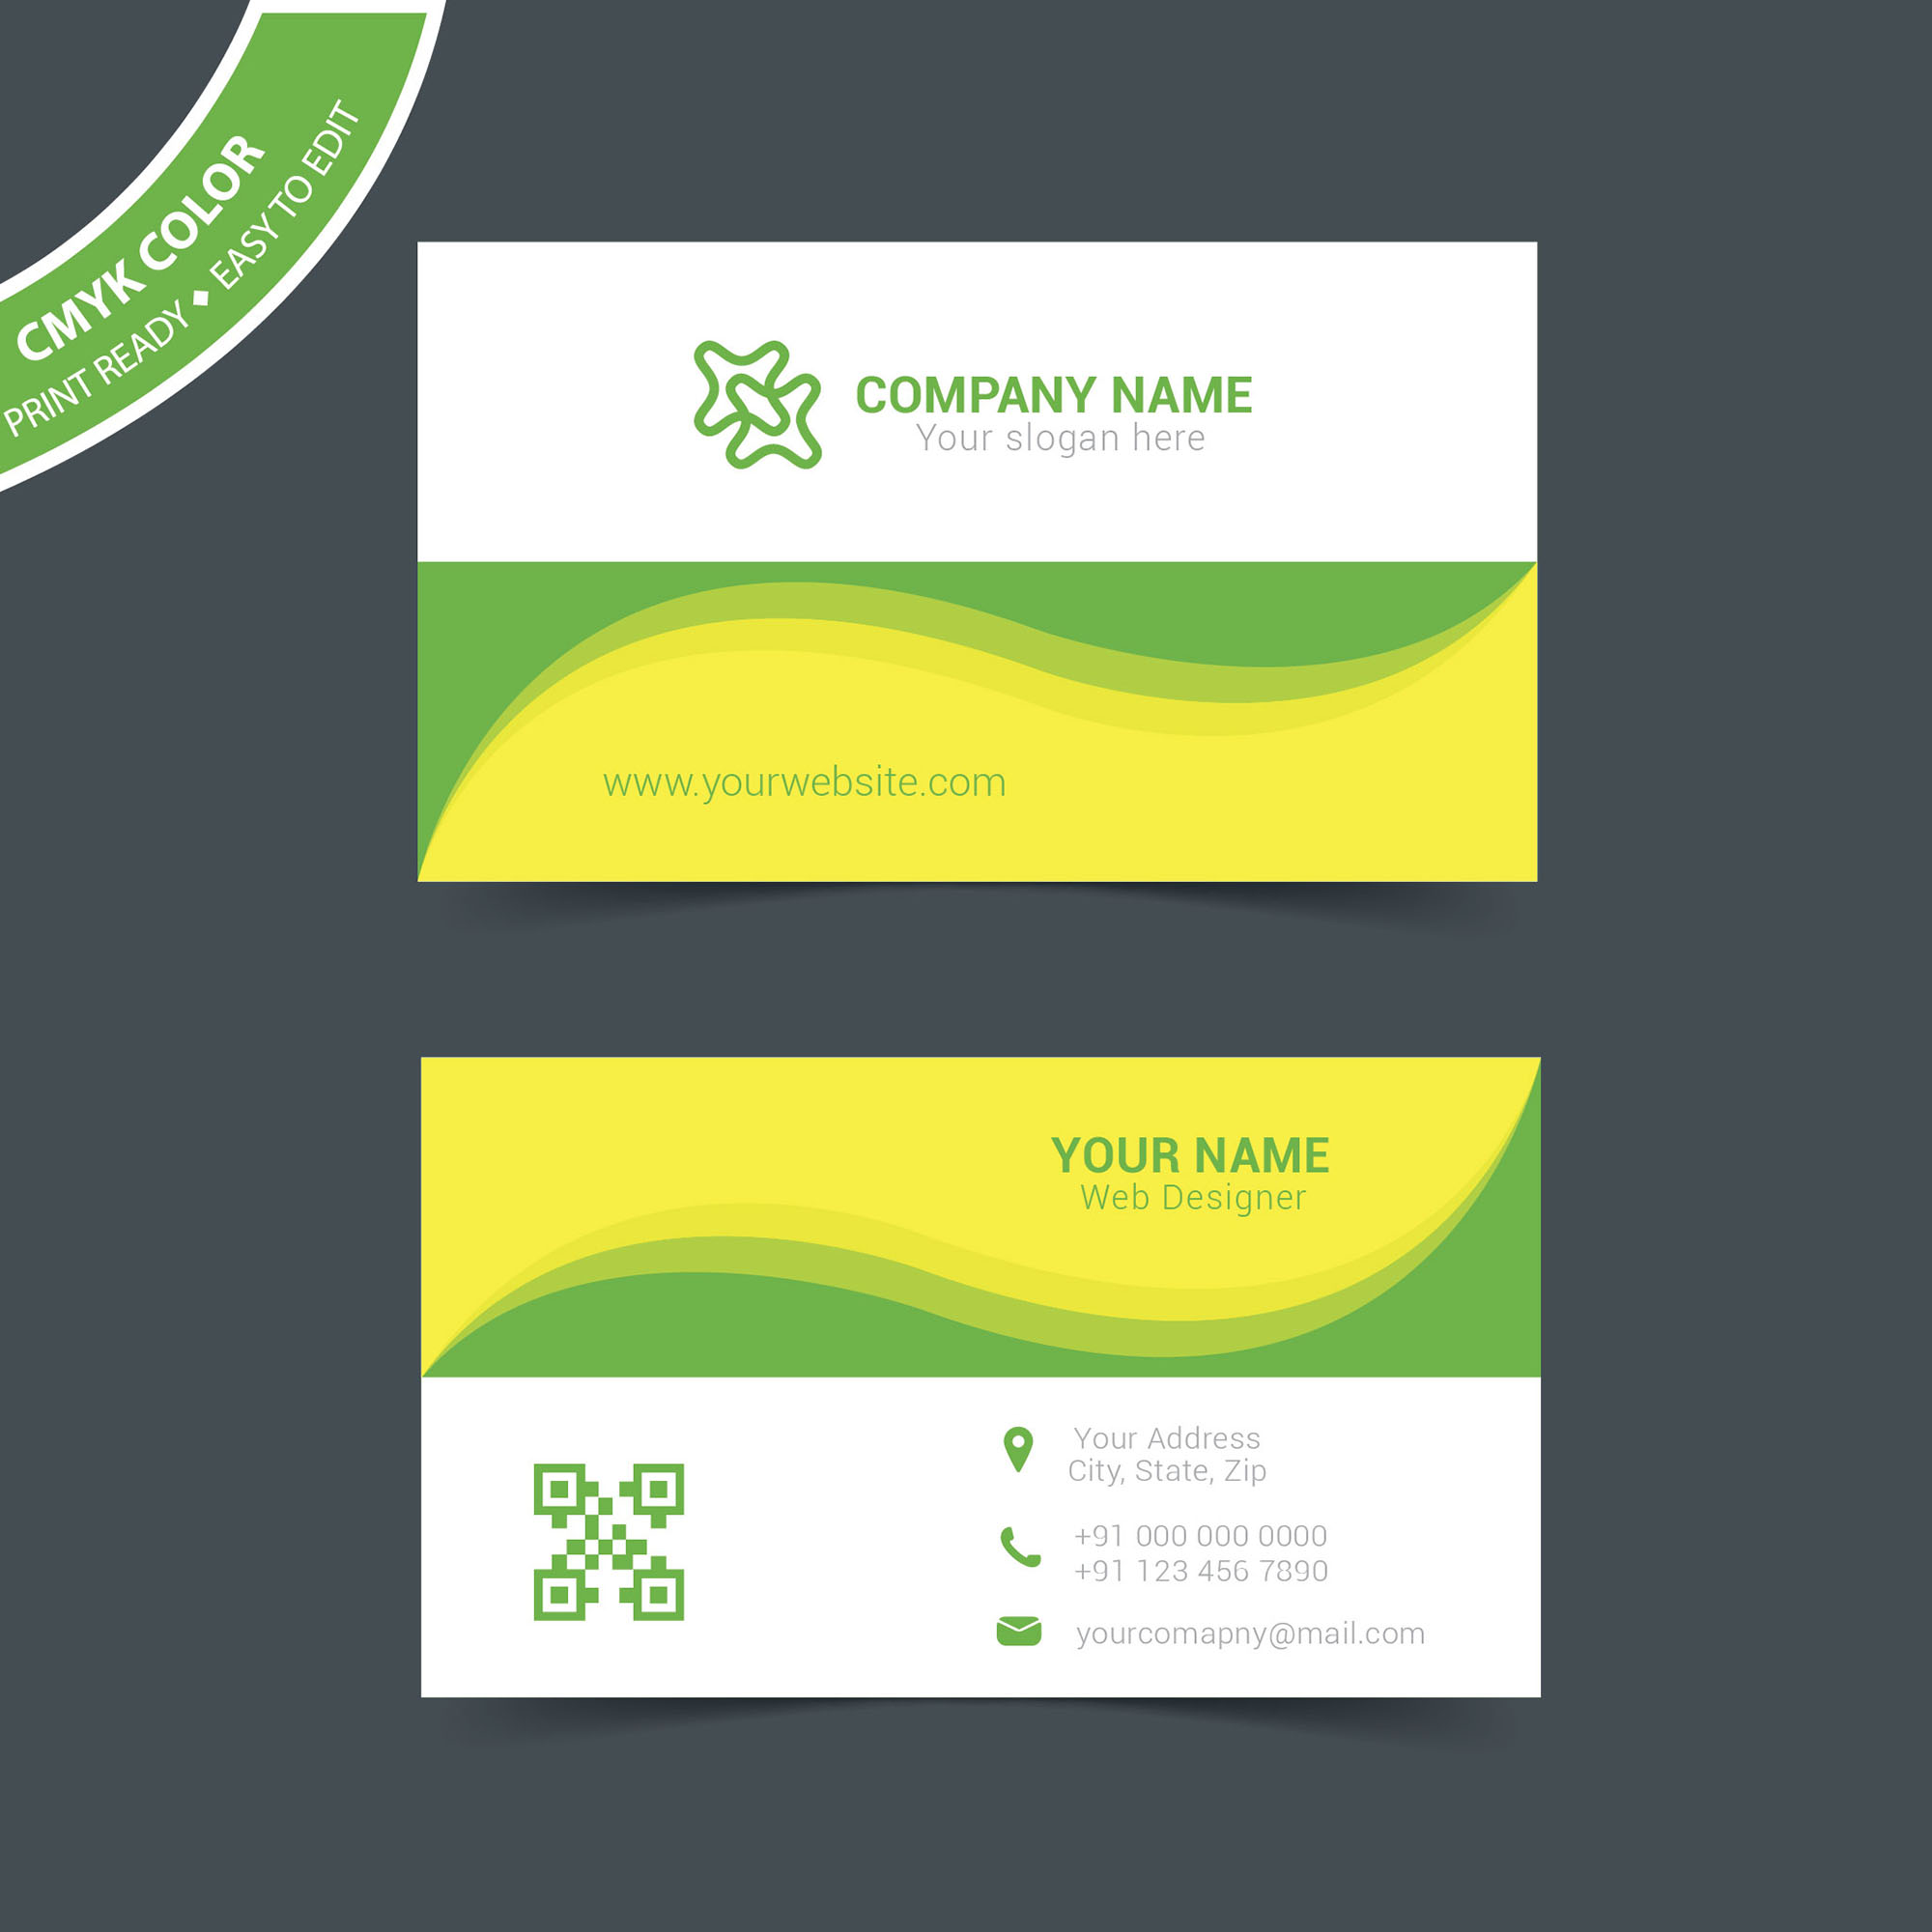 Corporate business card vector free download wisxi business card business cards business card design business card template design templates reheart Choice Image